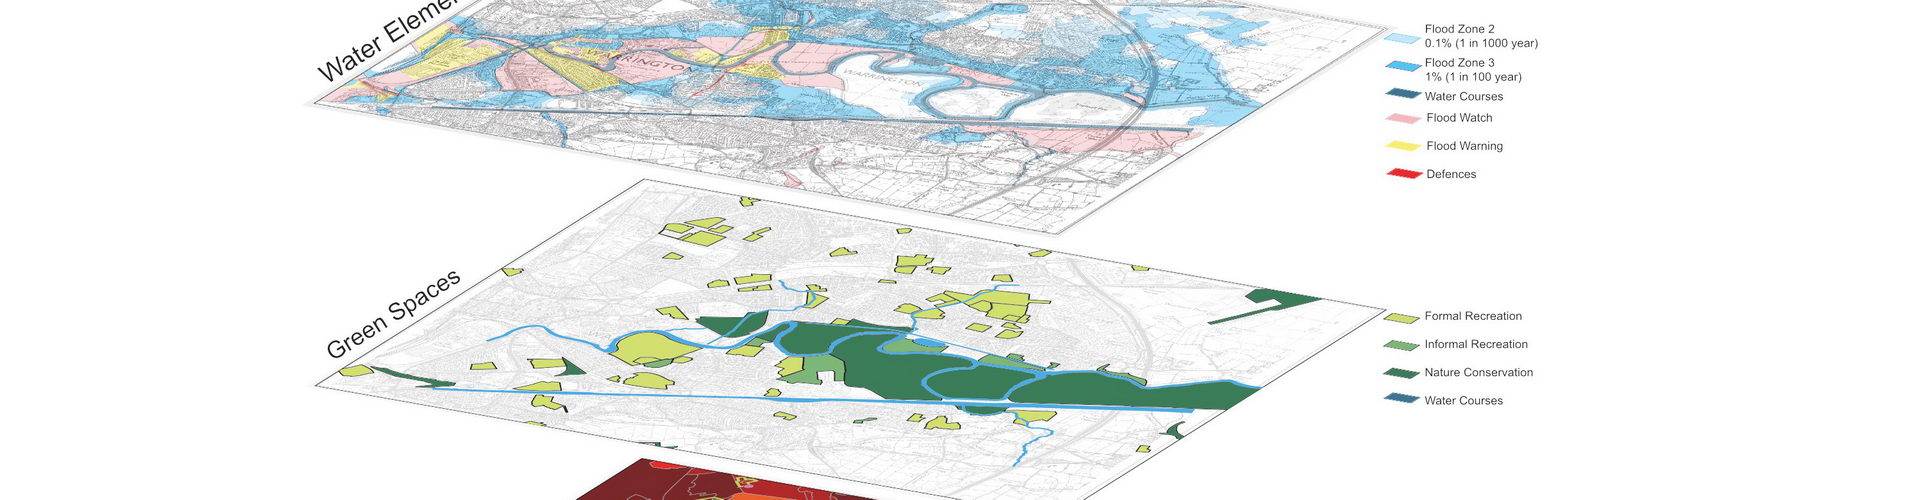 Gis geographical information systems landscape for Gis for landscape architects